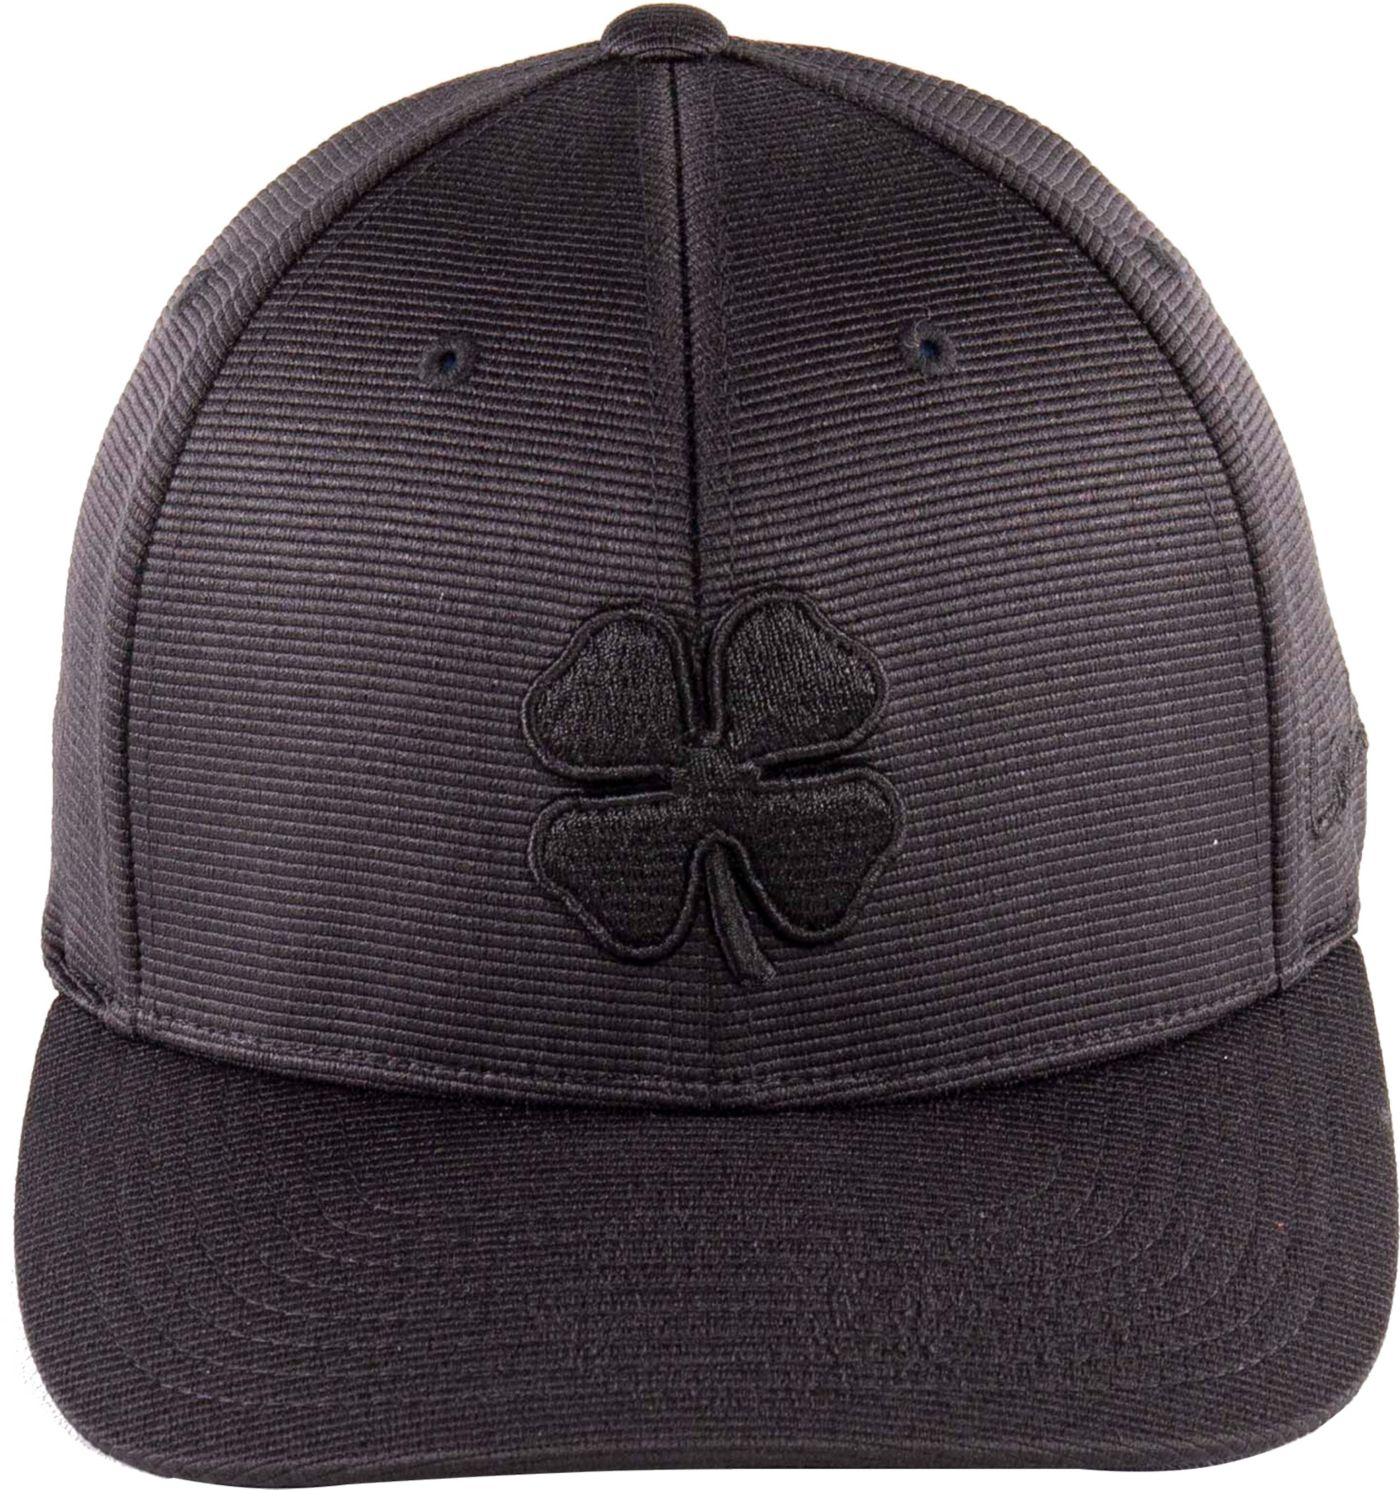 Black Clover + Rawlings BlackOut Fitted Hat